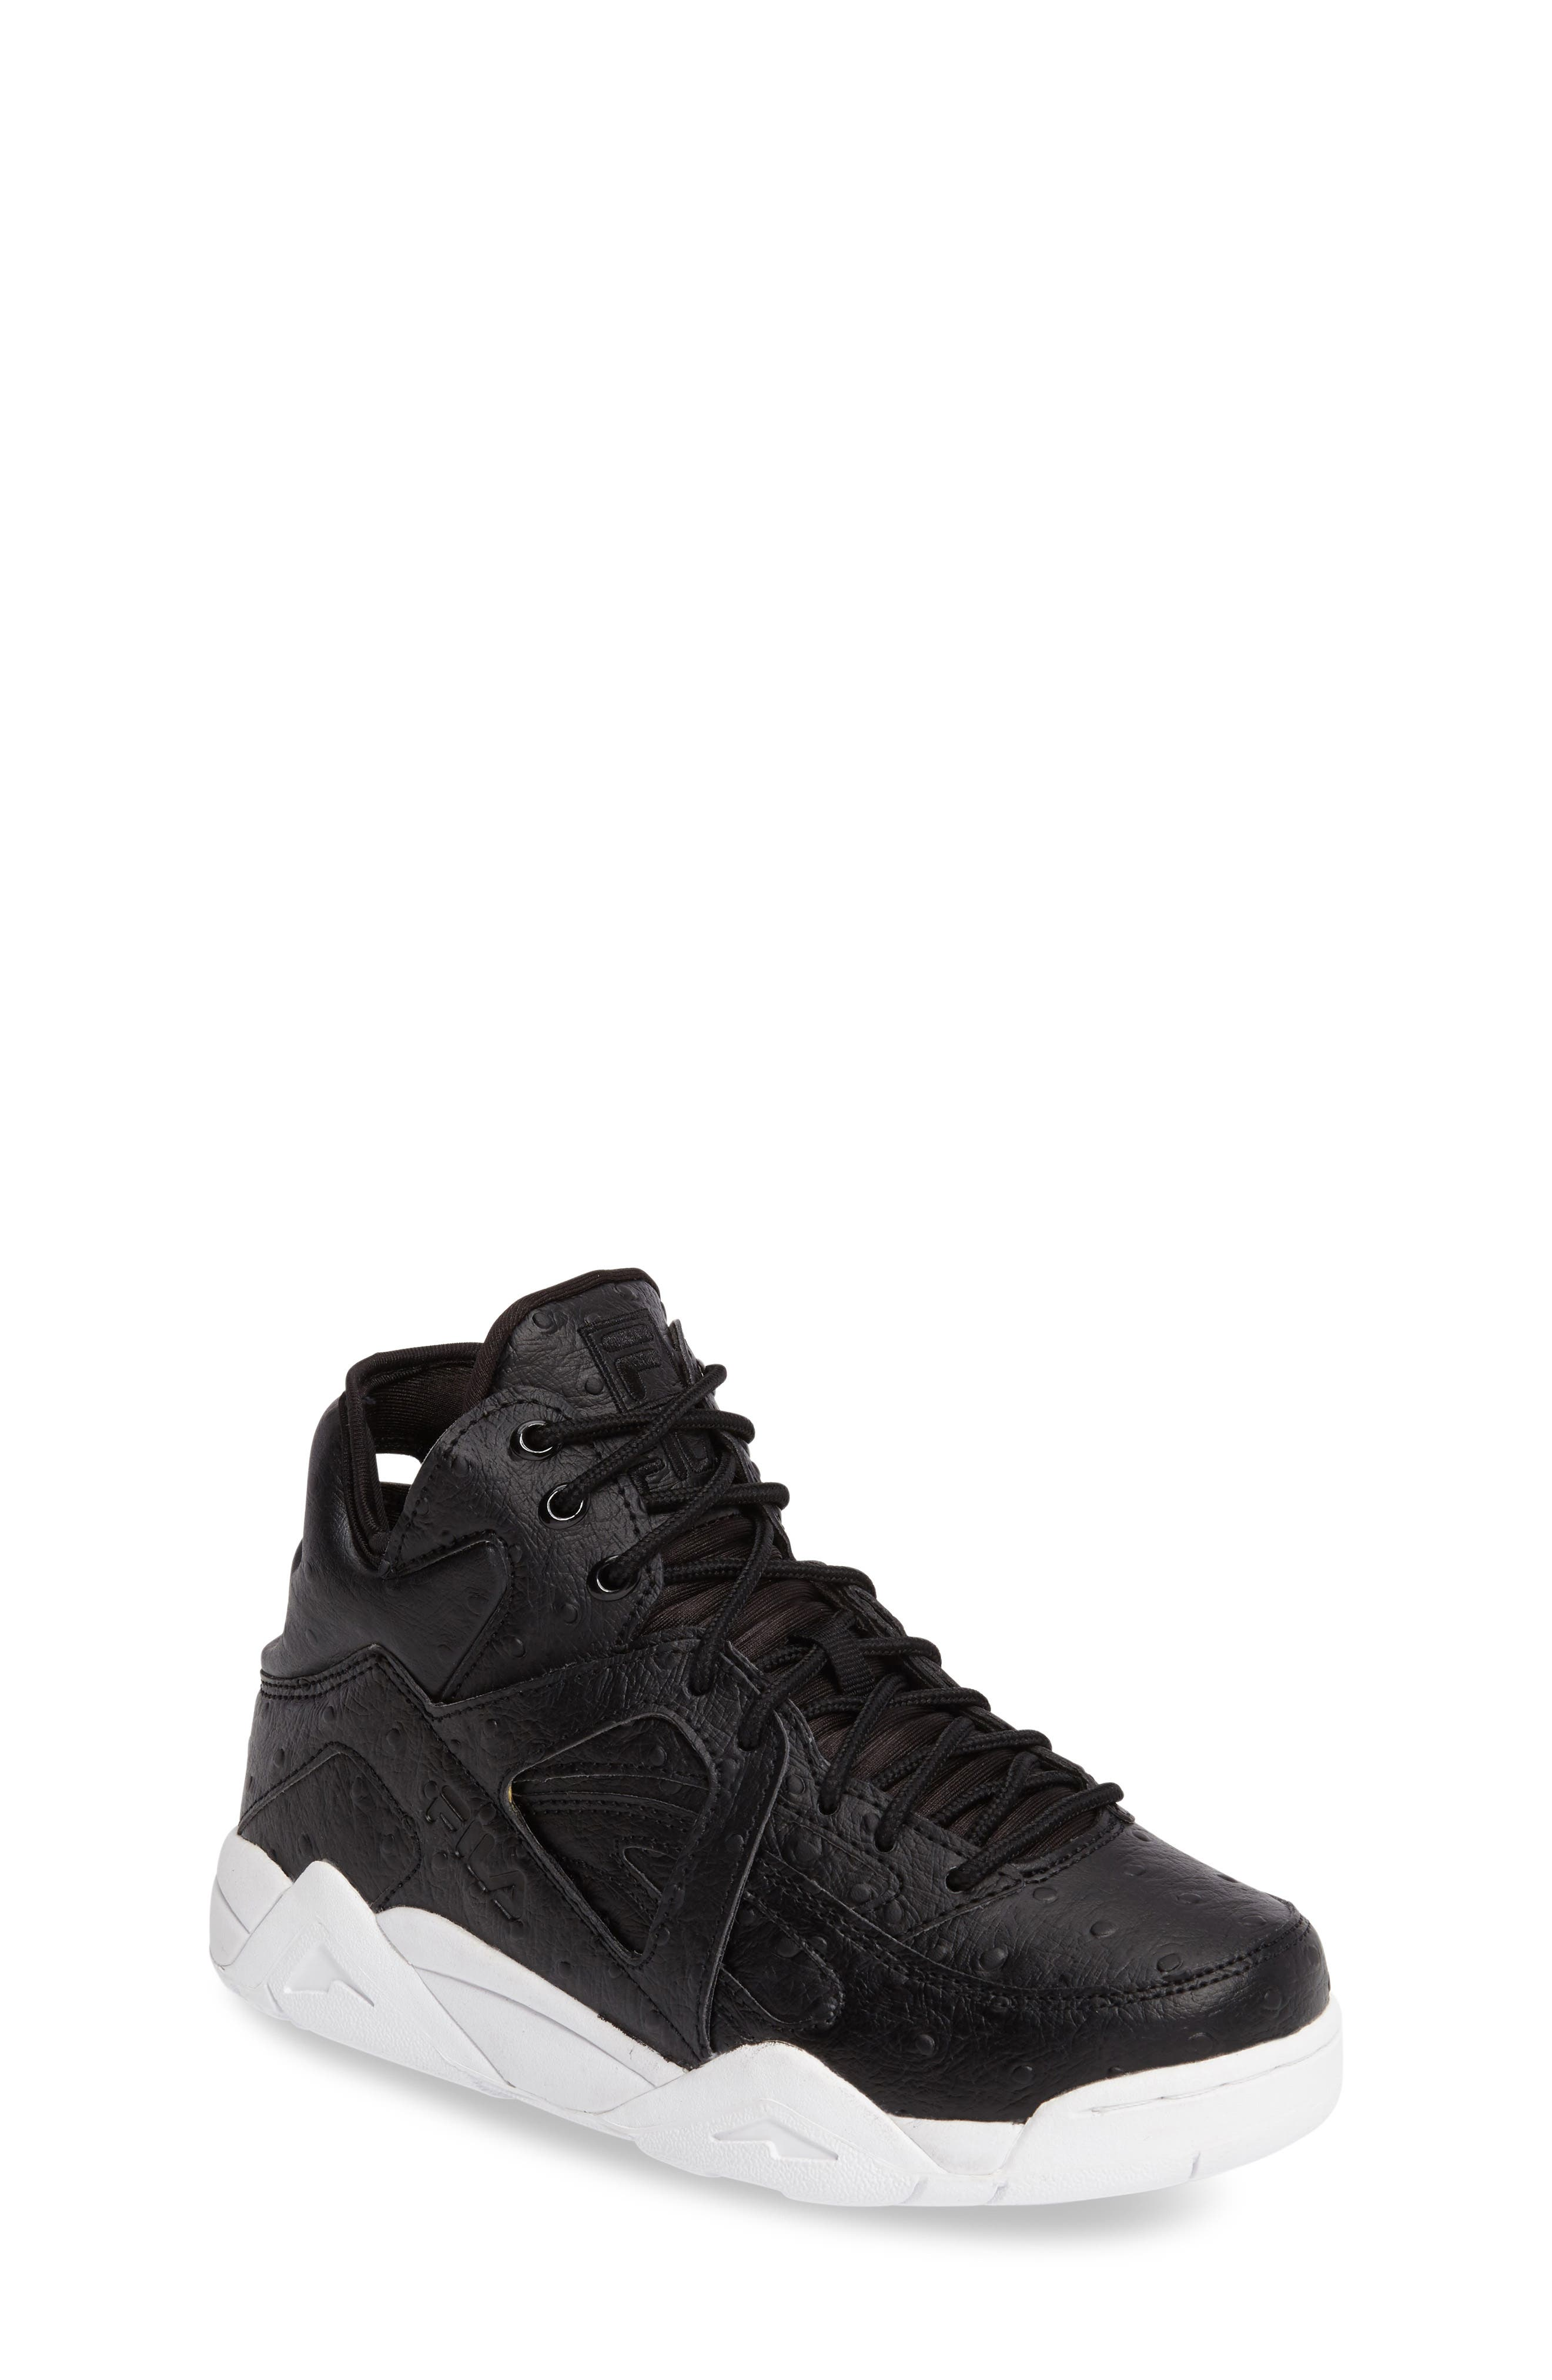 The Cage Ostrich Sneaker,                             Main thumbnail 1, color,                             013